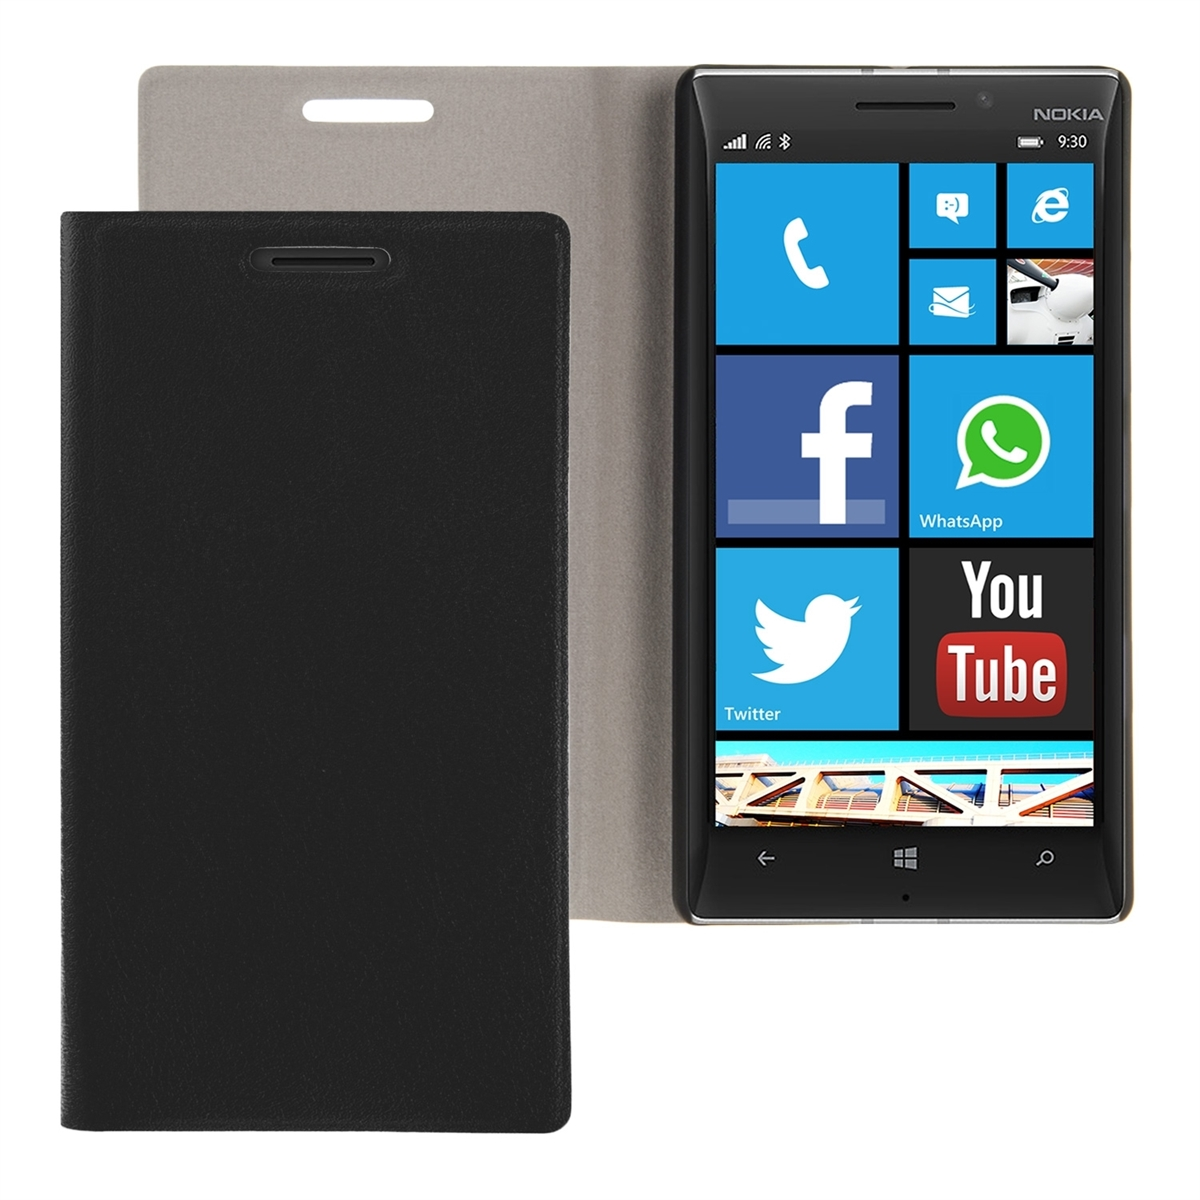 kwmobile-FLIP-COVER-FUR-NOKIA-LUMIA-930-SCHUTZ-HULLE-HANDY-CASE-SLIM-ETUI-BOOK